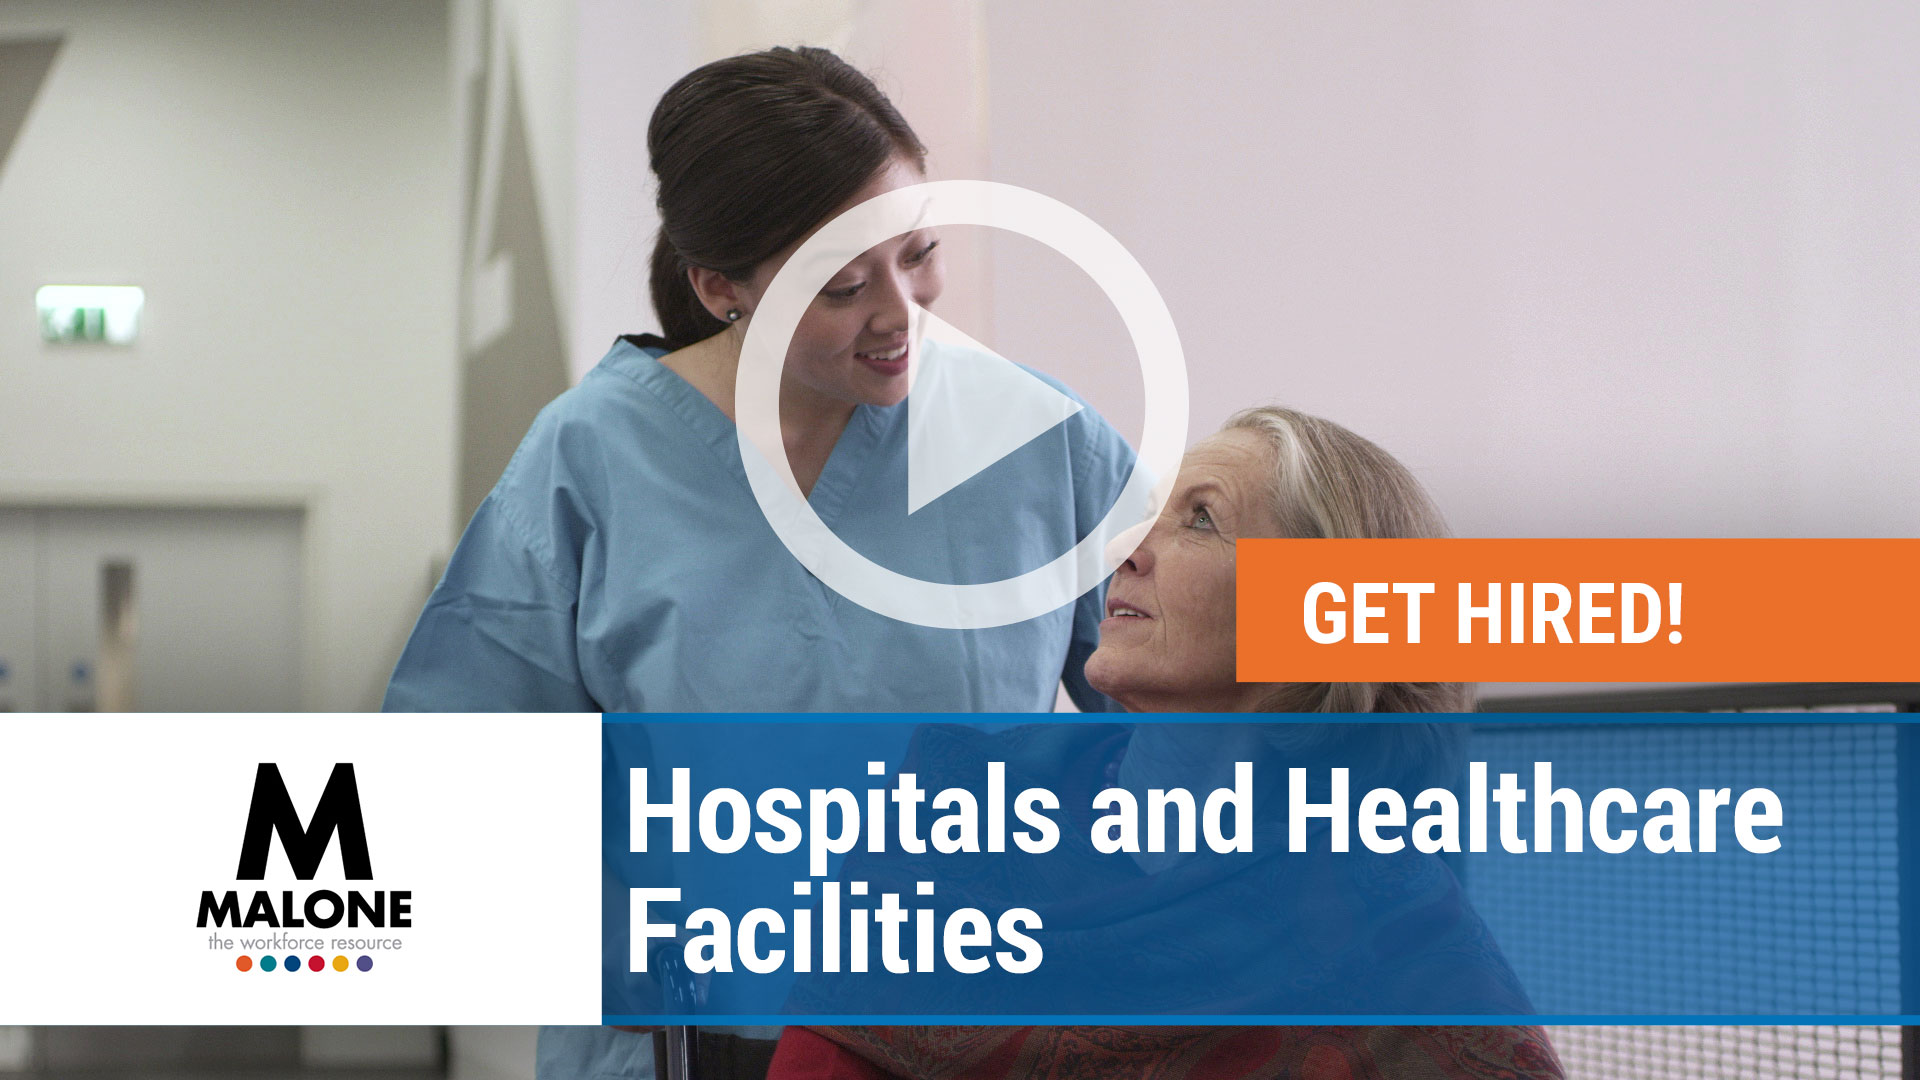 Watch our careers video for available job opening Hospitals and Healthcare Facilities in Louisville, Kentucky